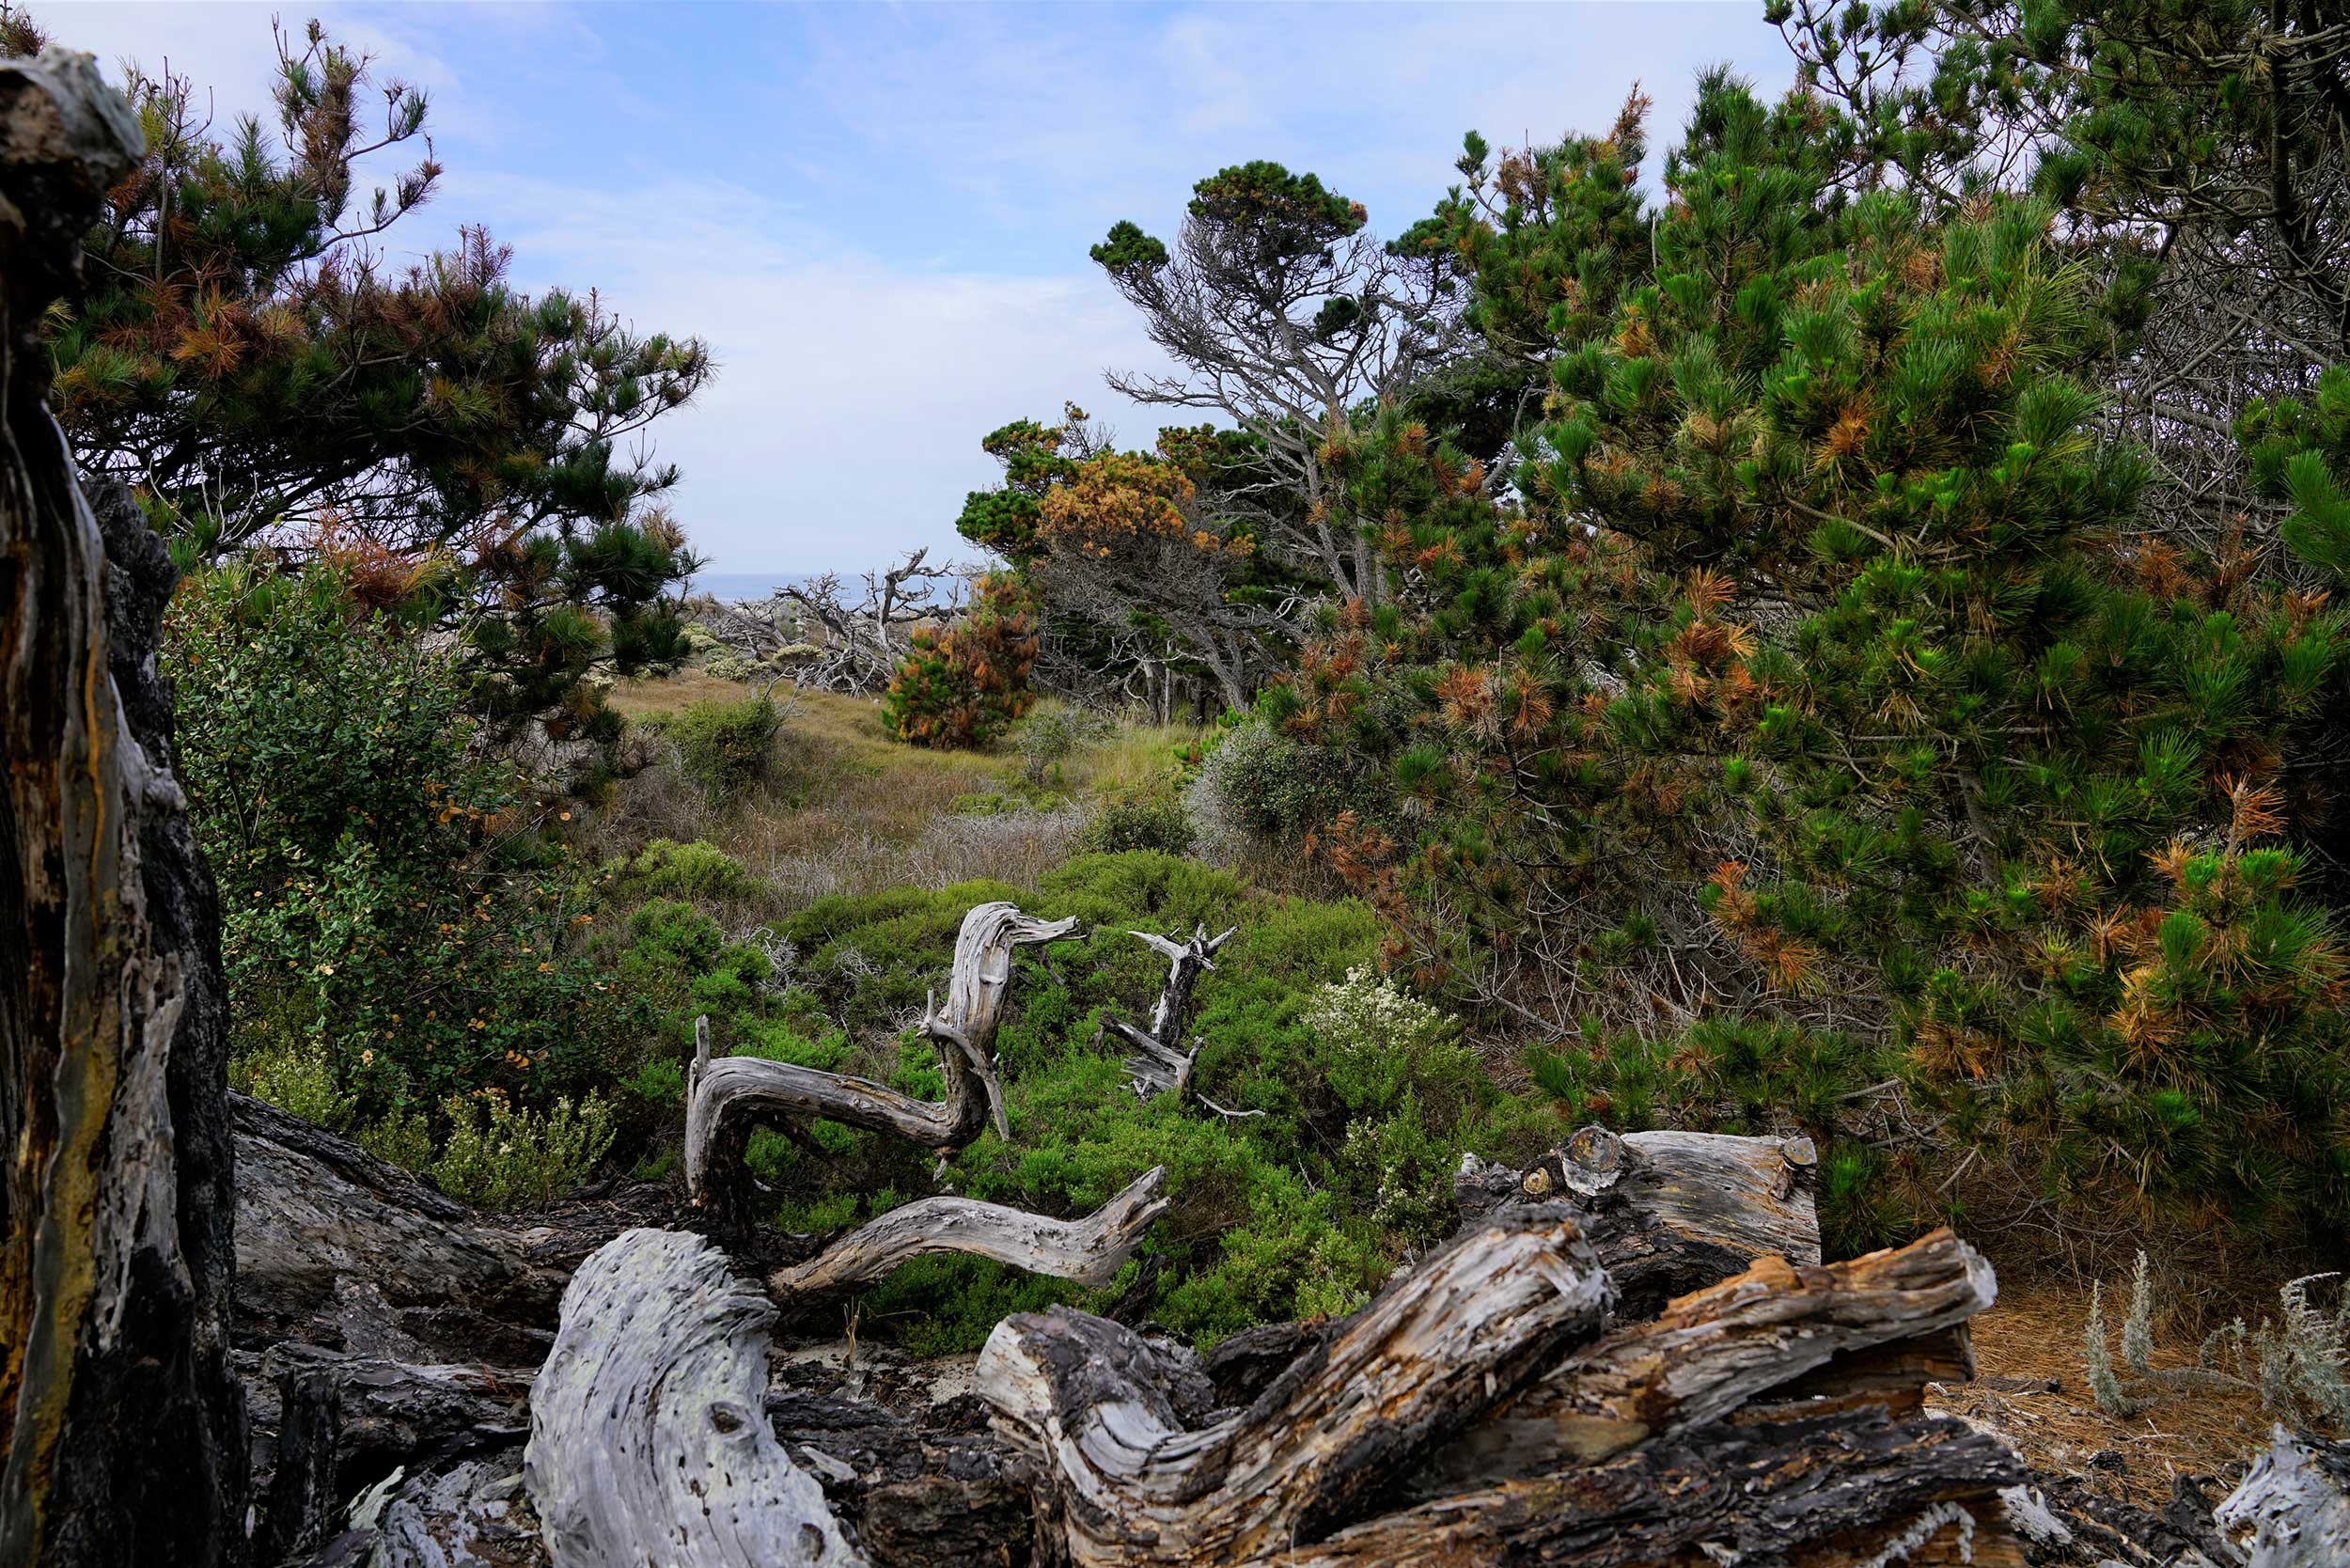 The nature surrounding AsilomarWalking down the boardwalk in Asilomar